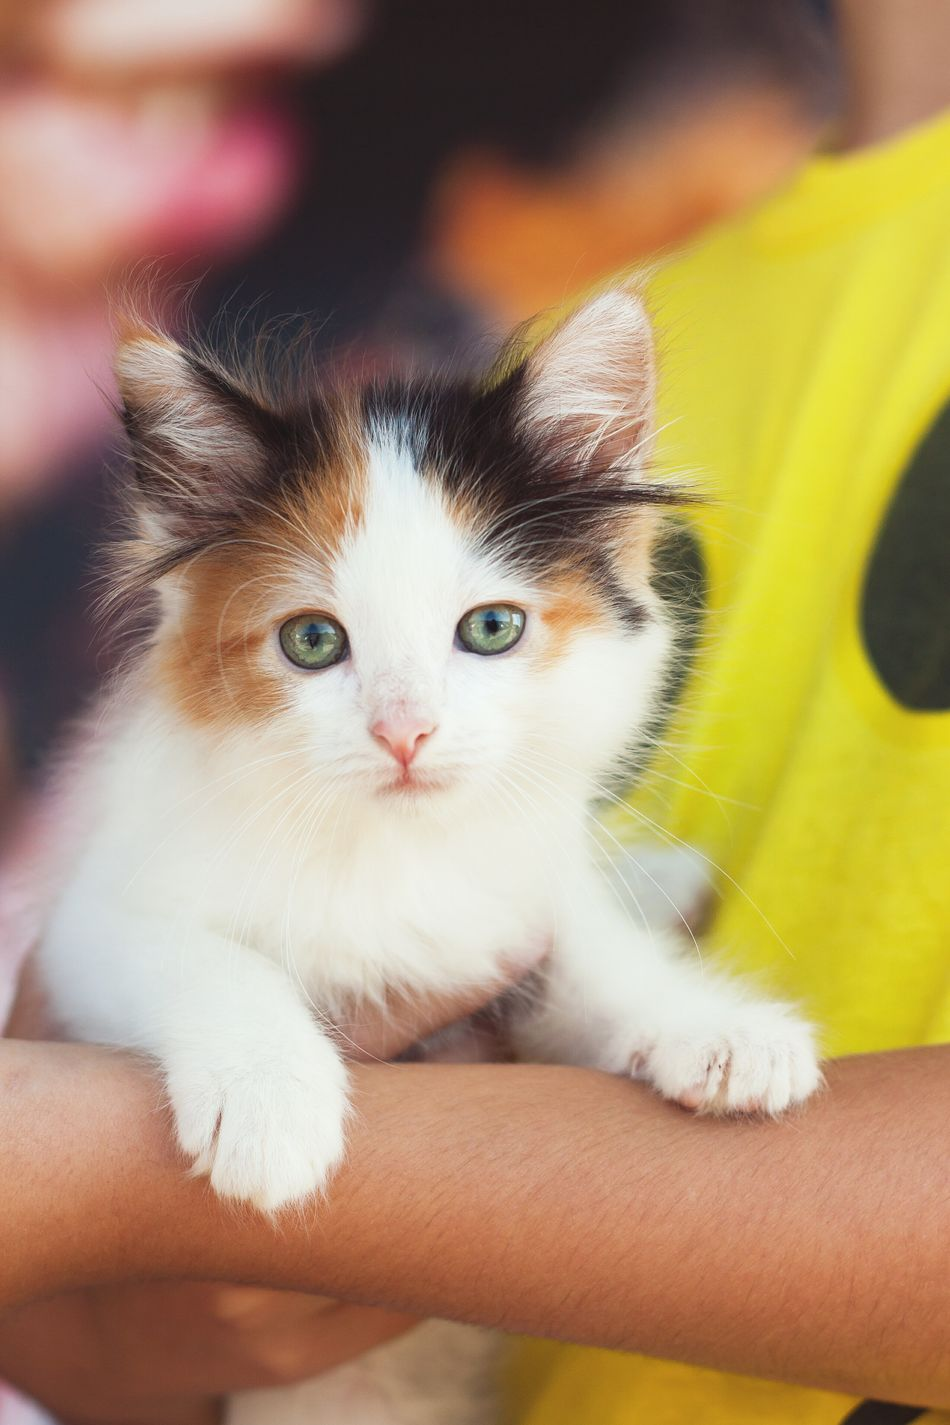 Rescue One not only has dogs for adoption but kittens as well.